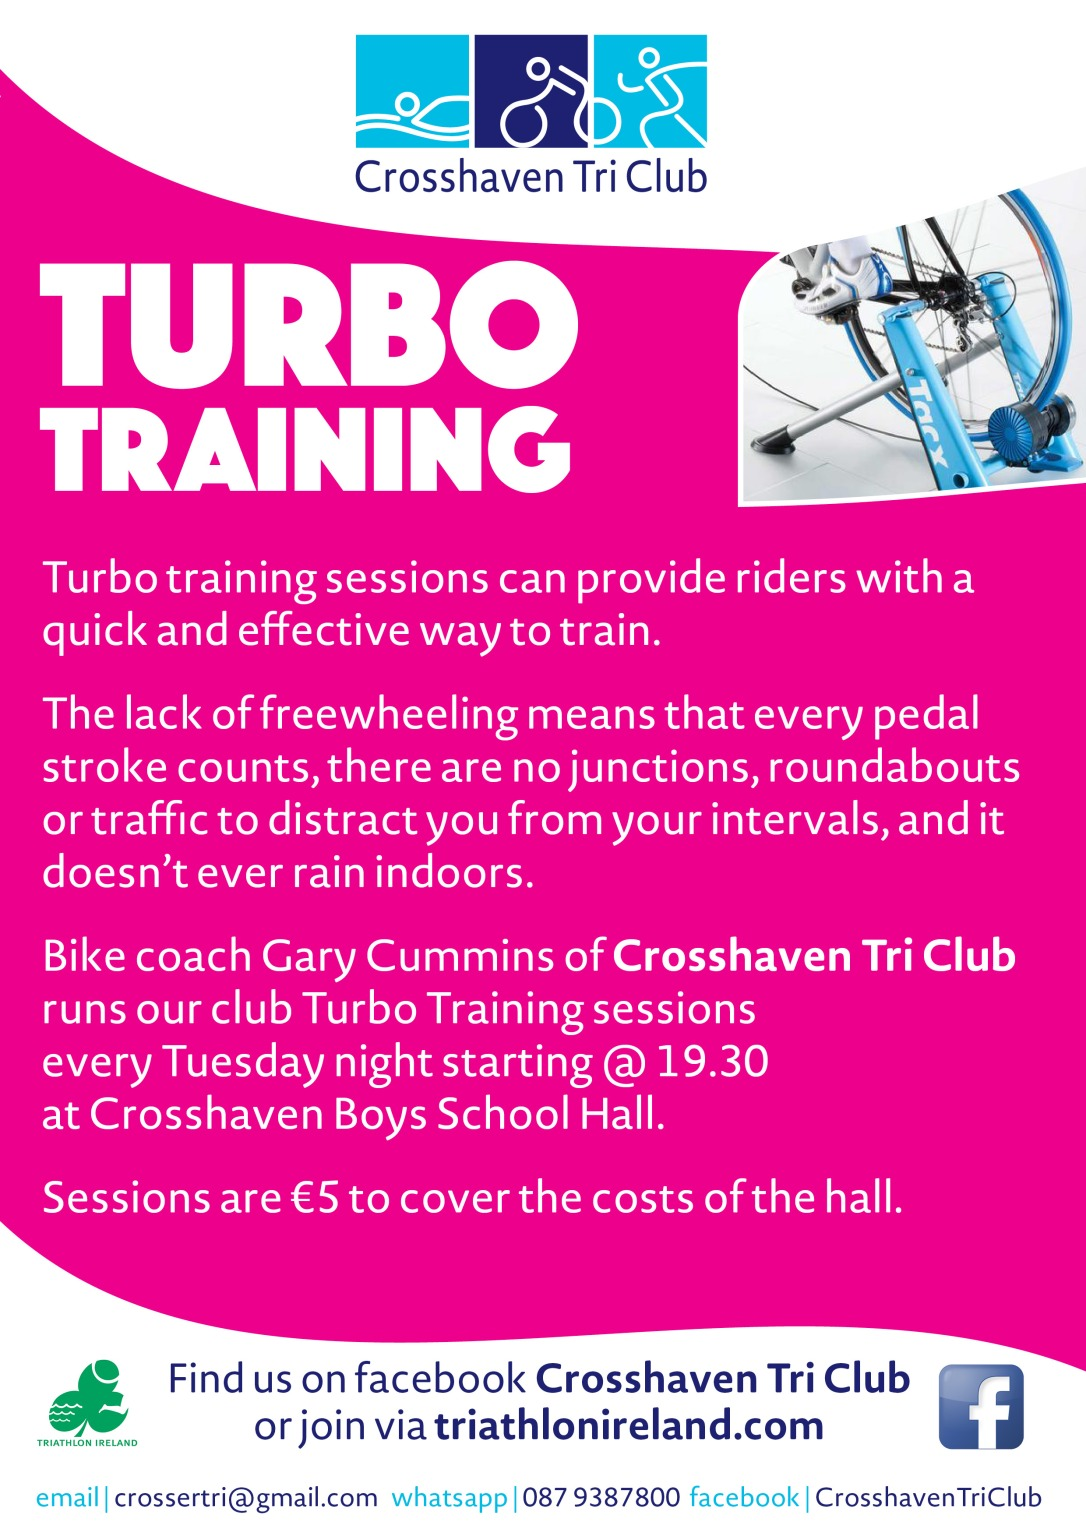 TURBO TRAINING